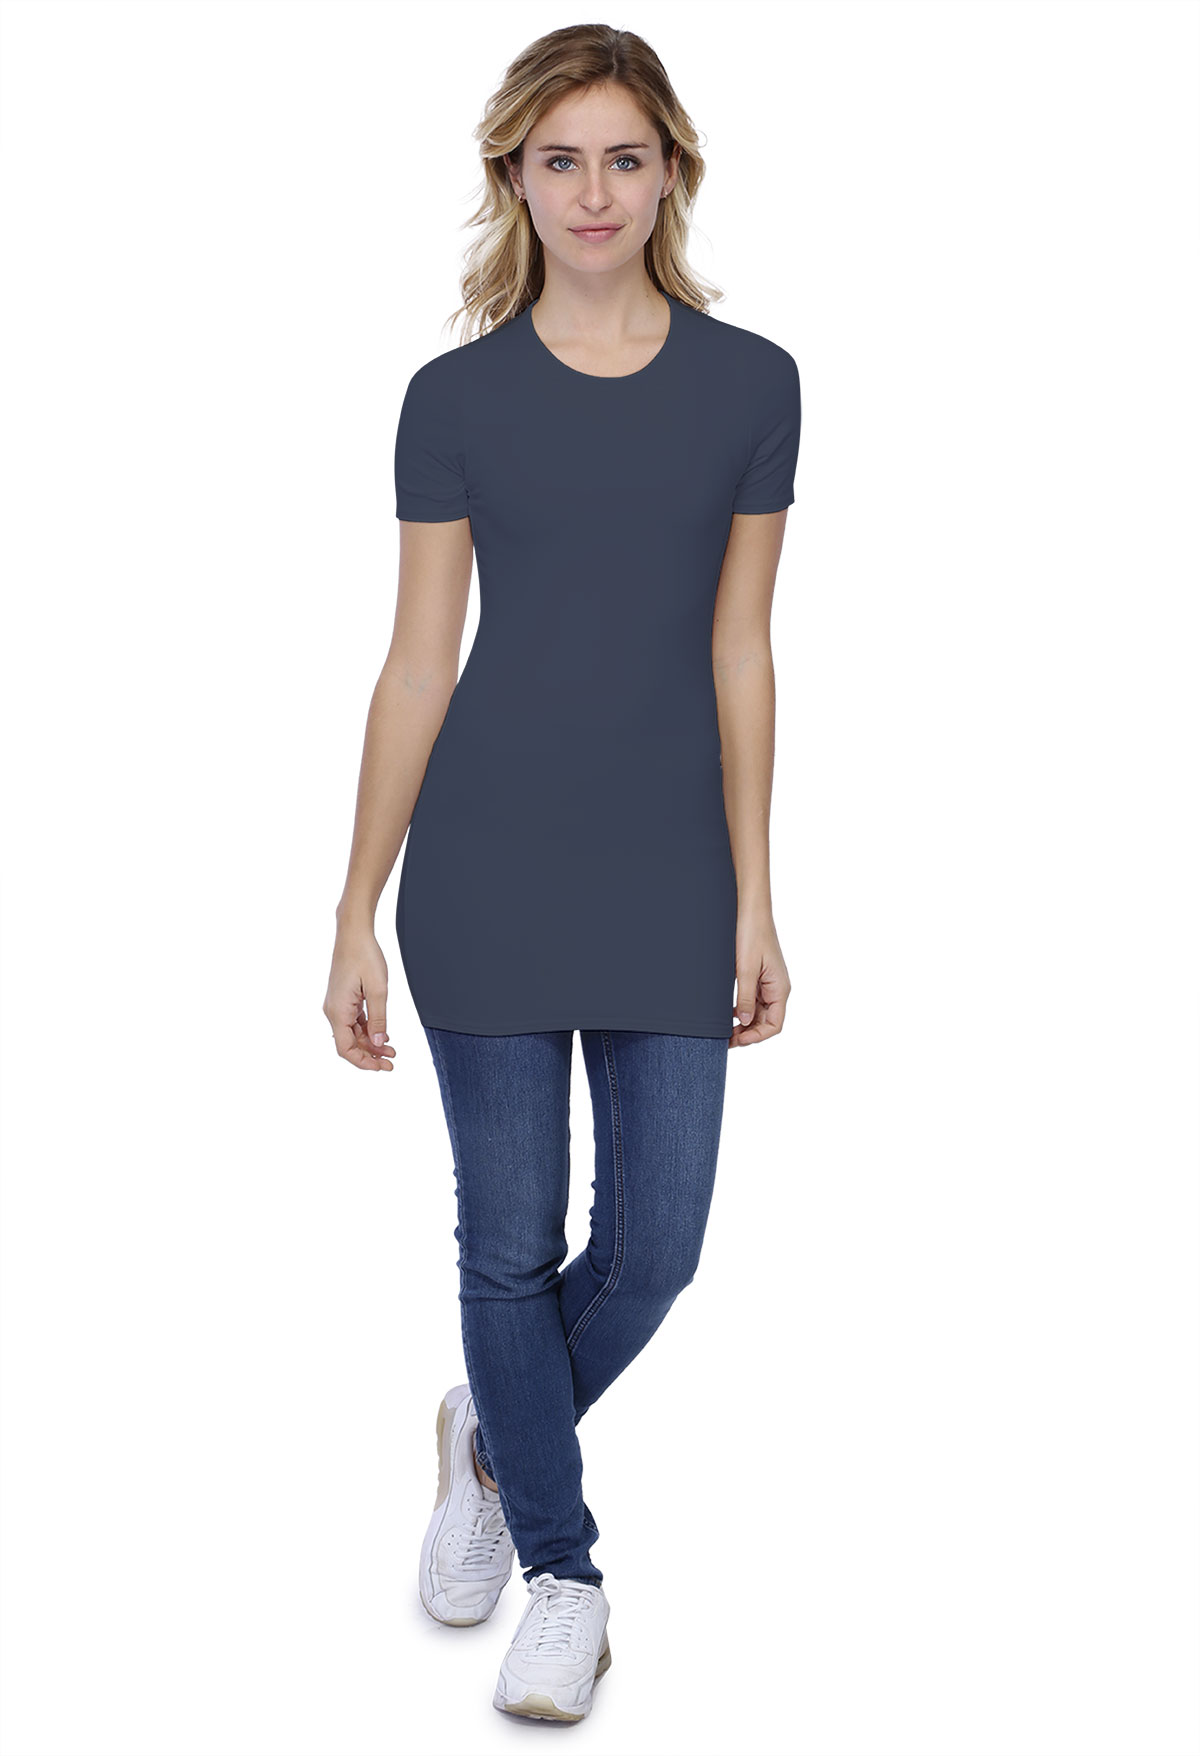 T-SHIRT LONG katia M/C+